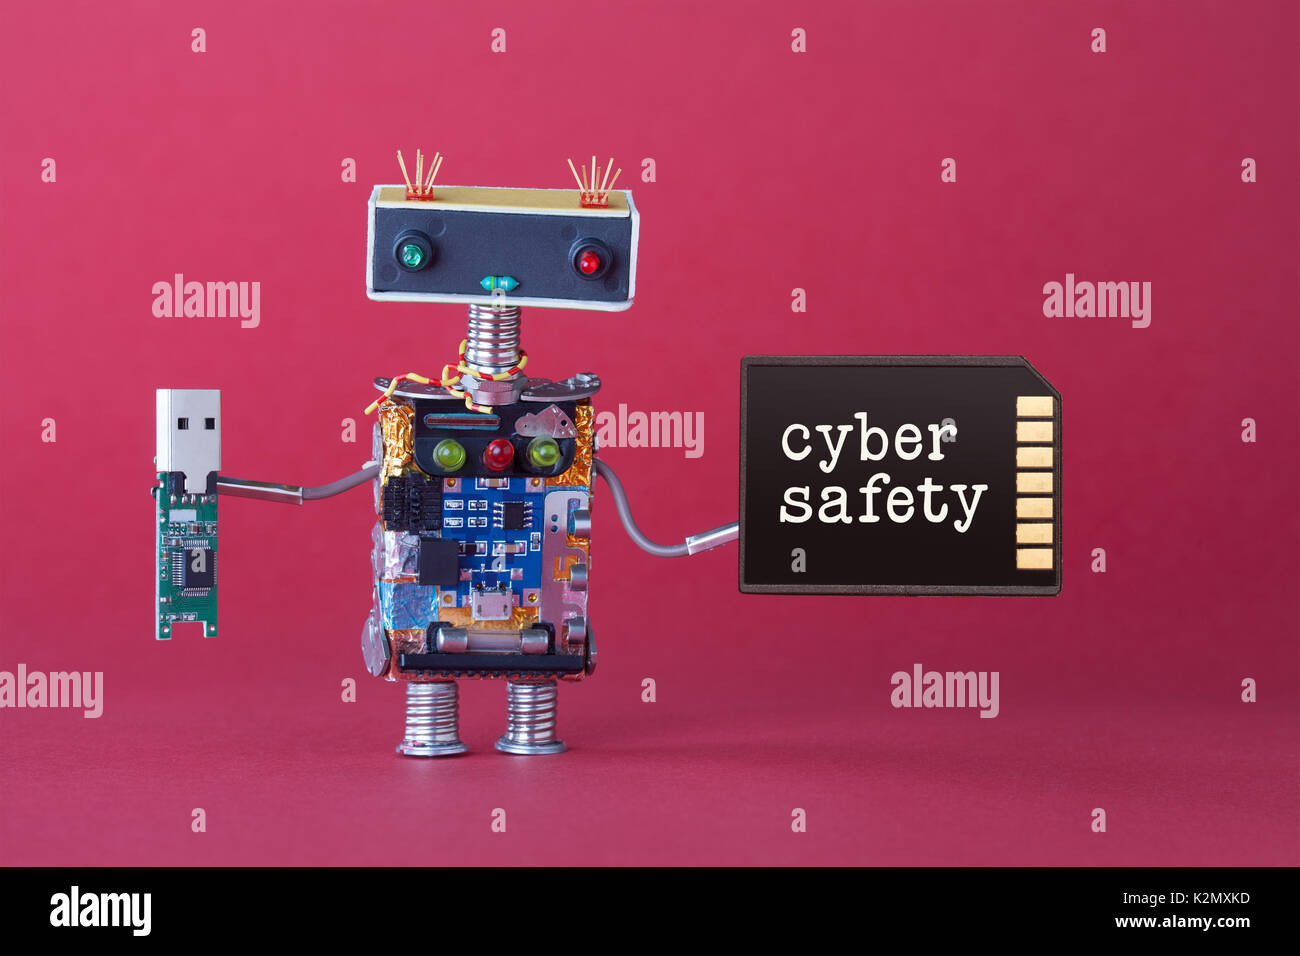 Cyber Safety Data Storage Concept. System Administrator Robot Toy With Usb  Flash Stick And Memory Card On Red Background. Copy Space Macro View Photo.